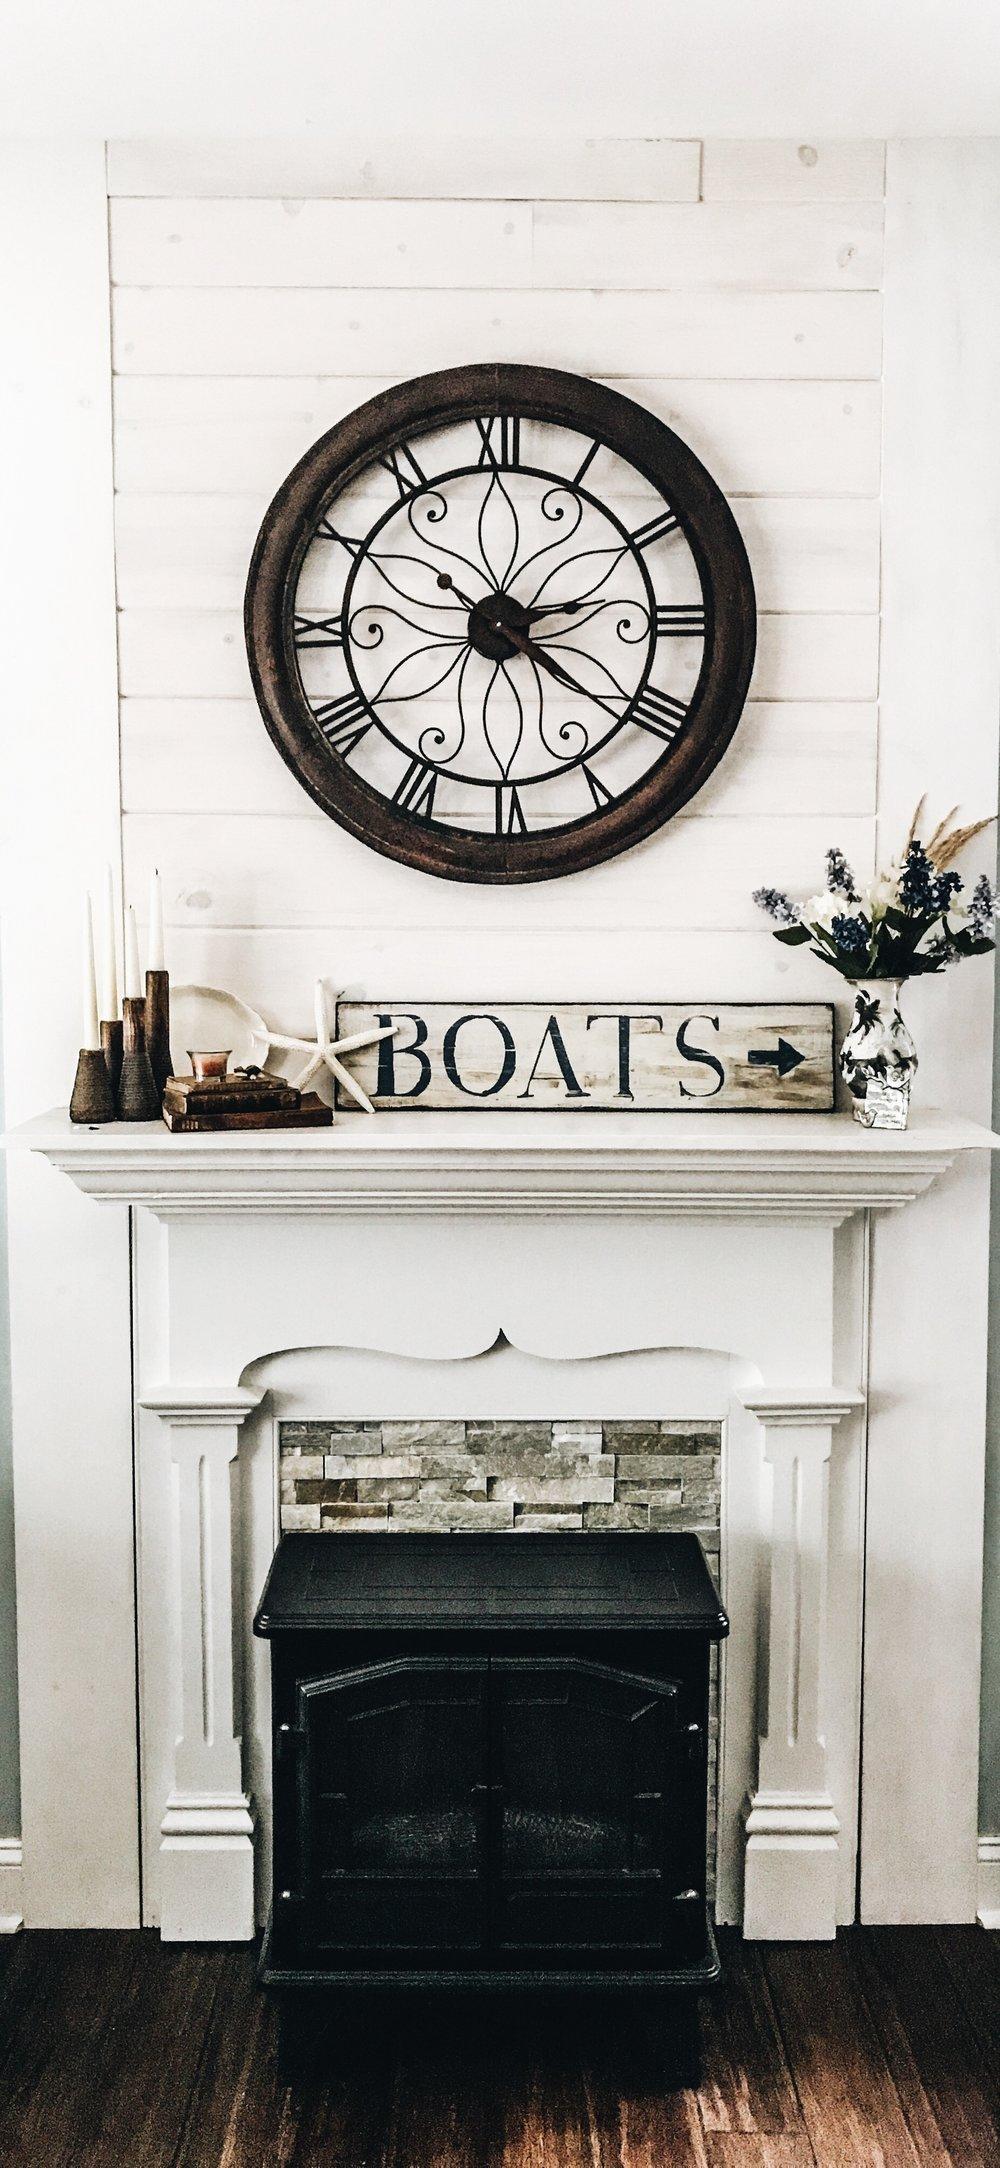 Lake House Fireplace Decor. How to decorate a fireplace. Large clock above a fireplace.